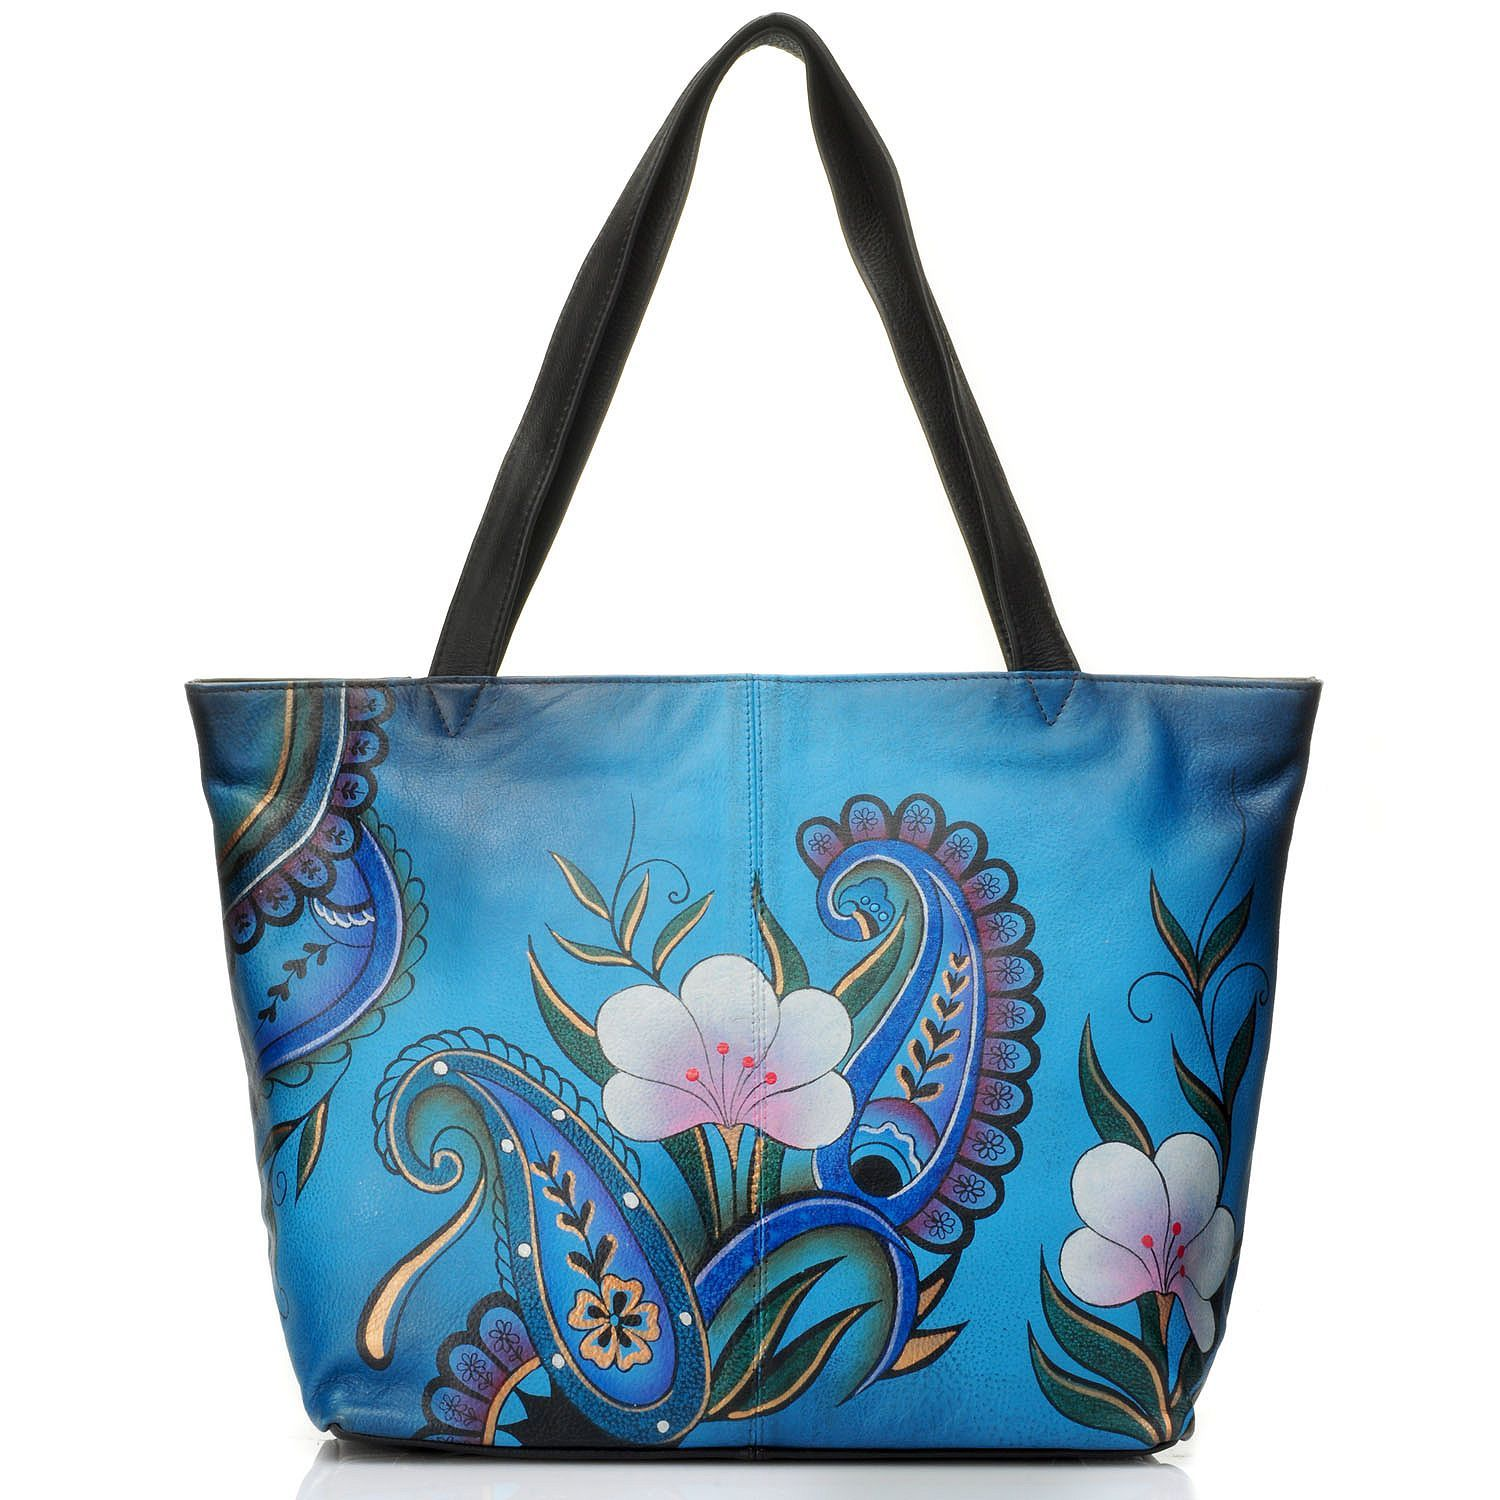 Chka Zip Top Hand Painted Leather Large Tote Bag Handbag Been Carrying For A Months Love It